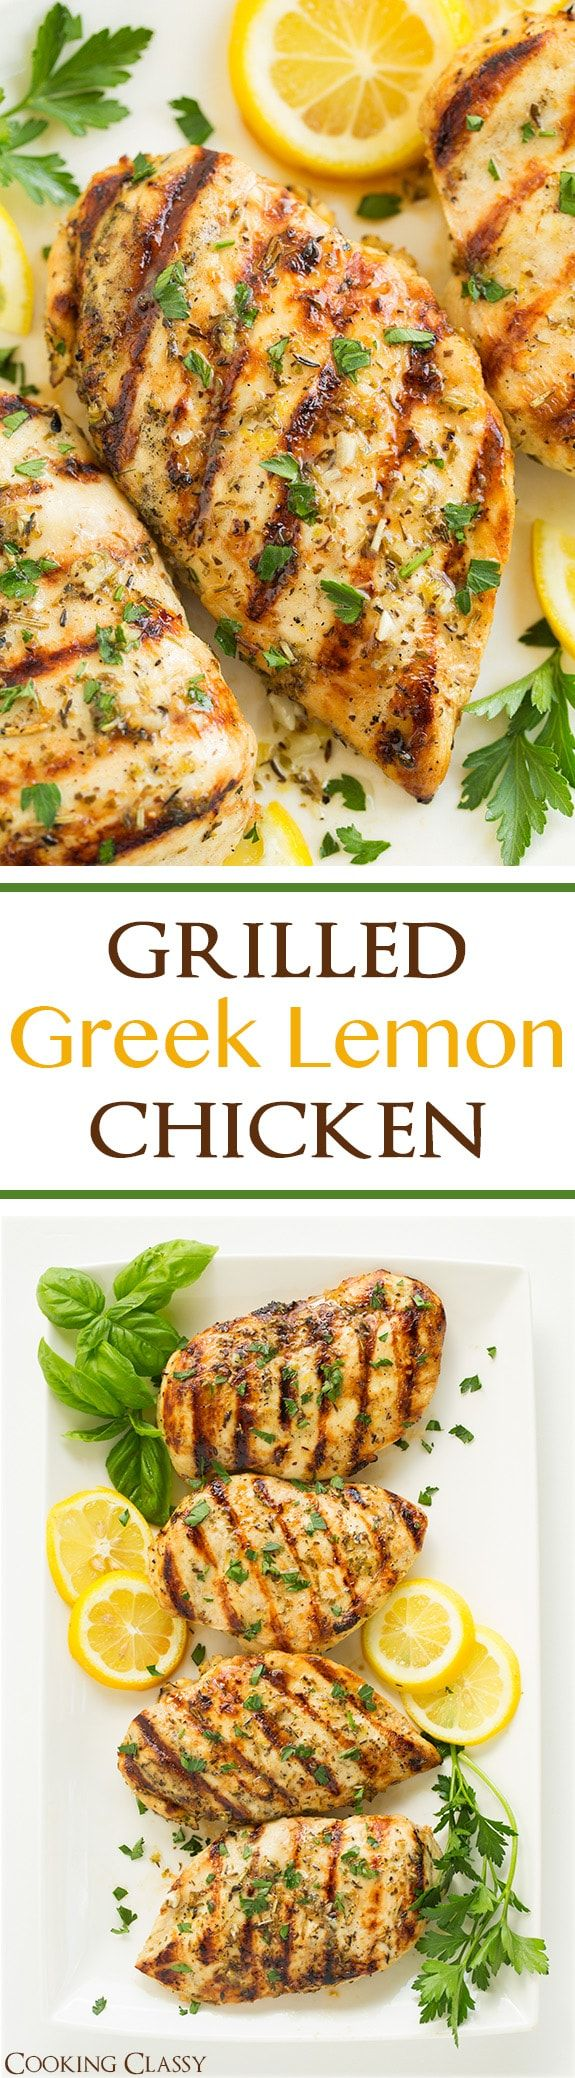 This Grilled Greek Lemon Chicken is bursting with fresh lemon flavor and is so easy to make! Chic